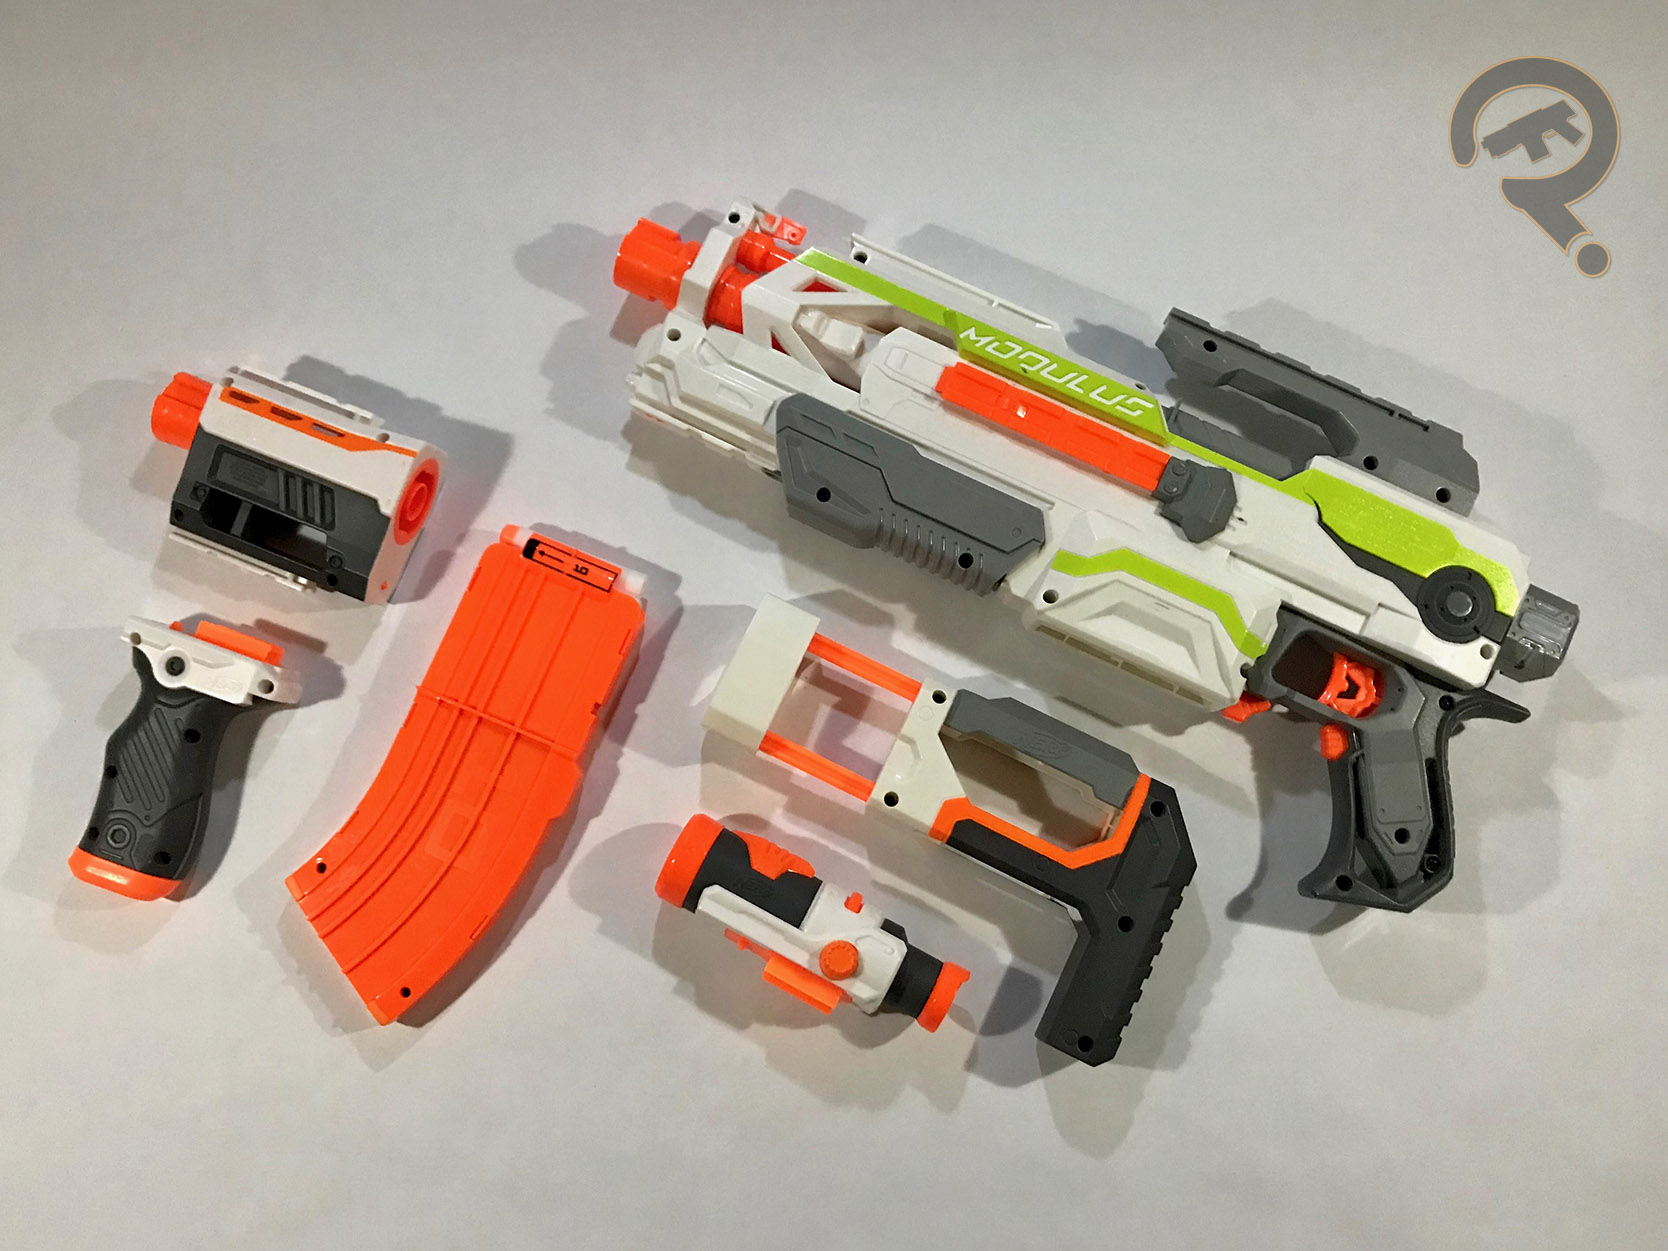 When designing this blaster, the people at Nerf went for a skeletonized  sci-fi looking handle which is cool until you pick up the blaster itself.